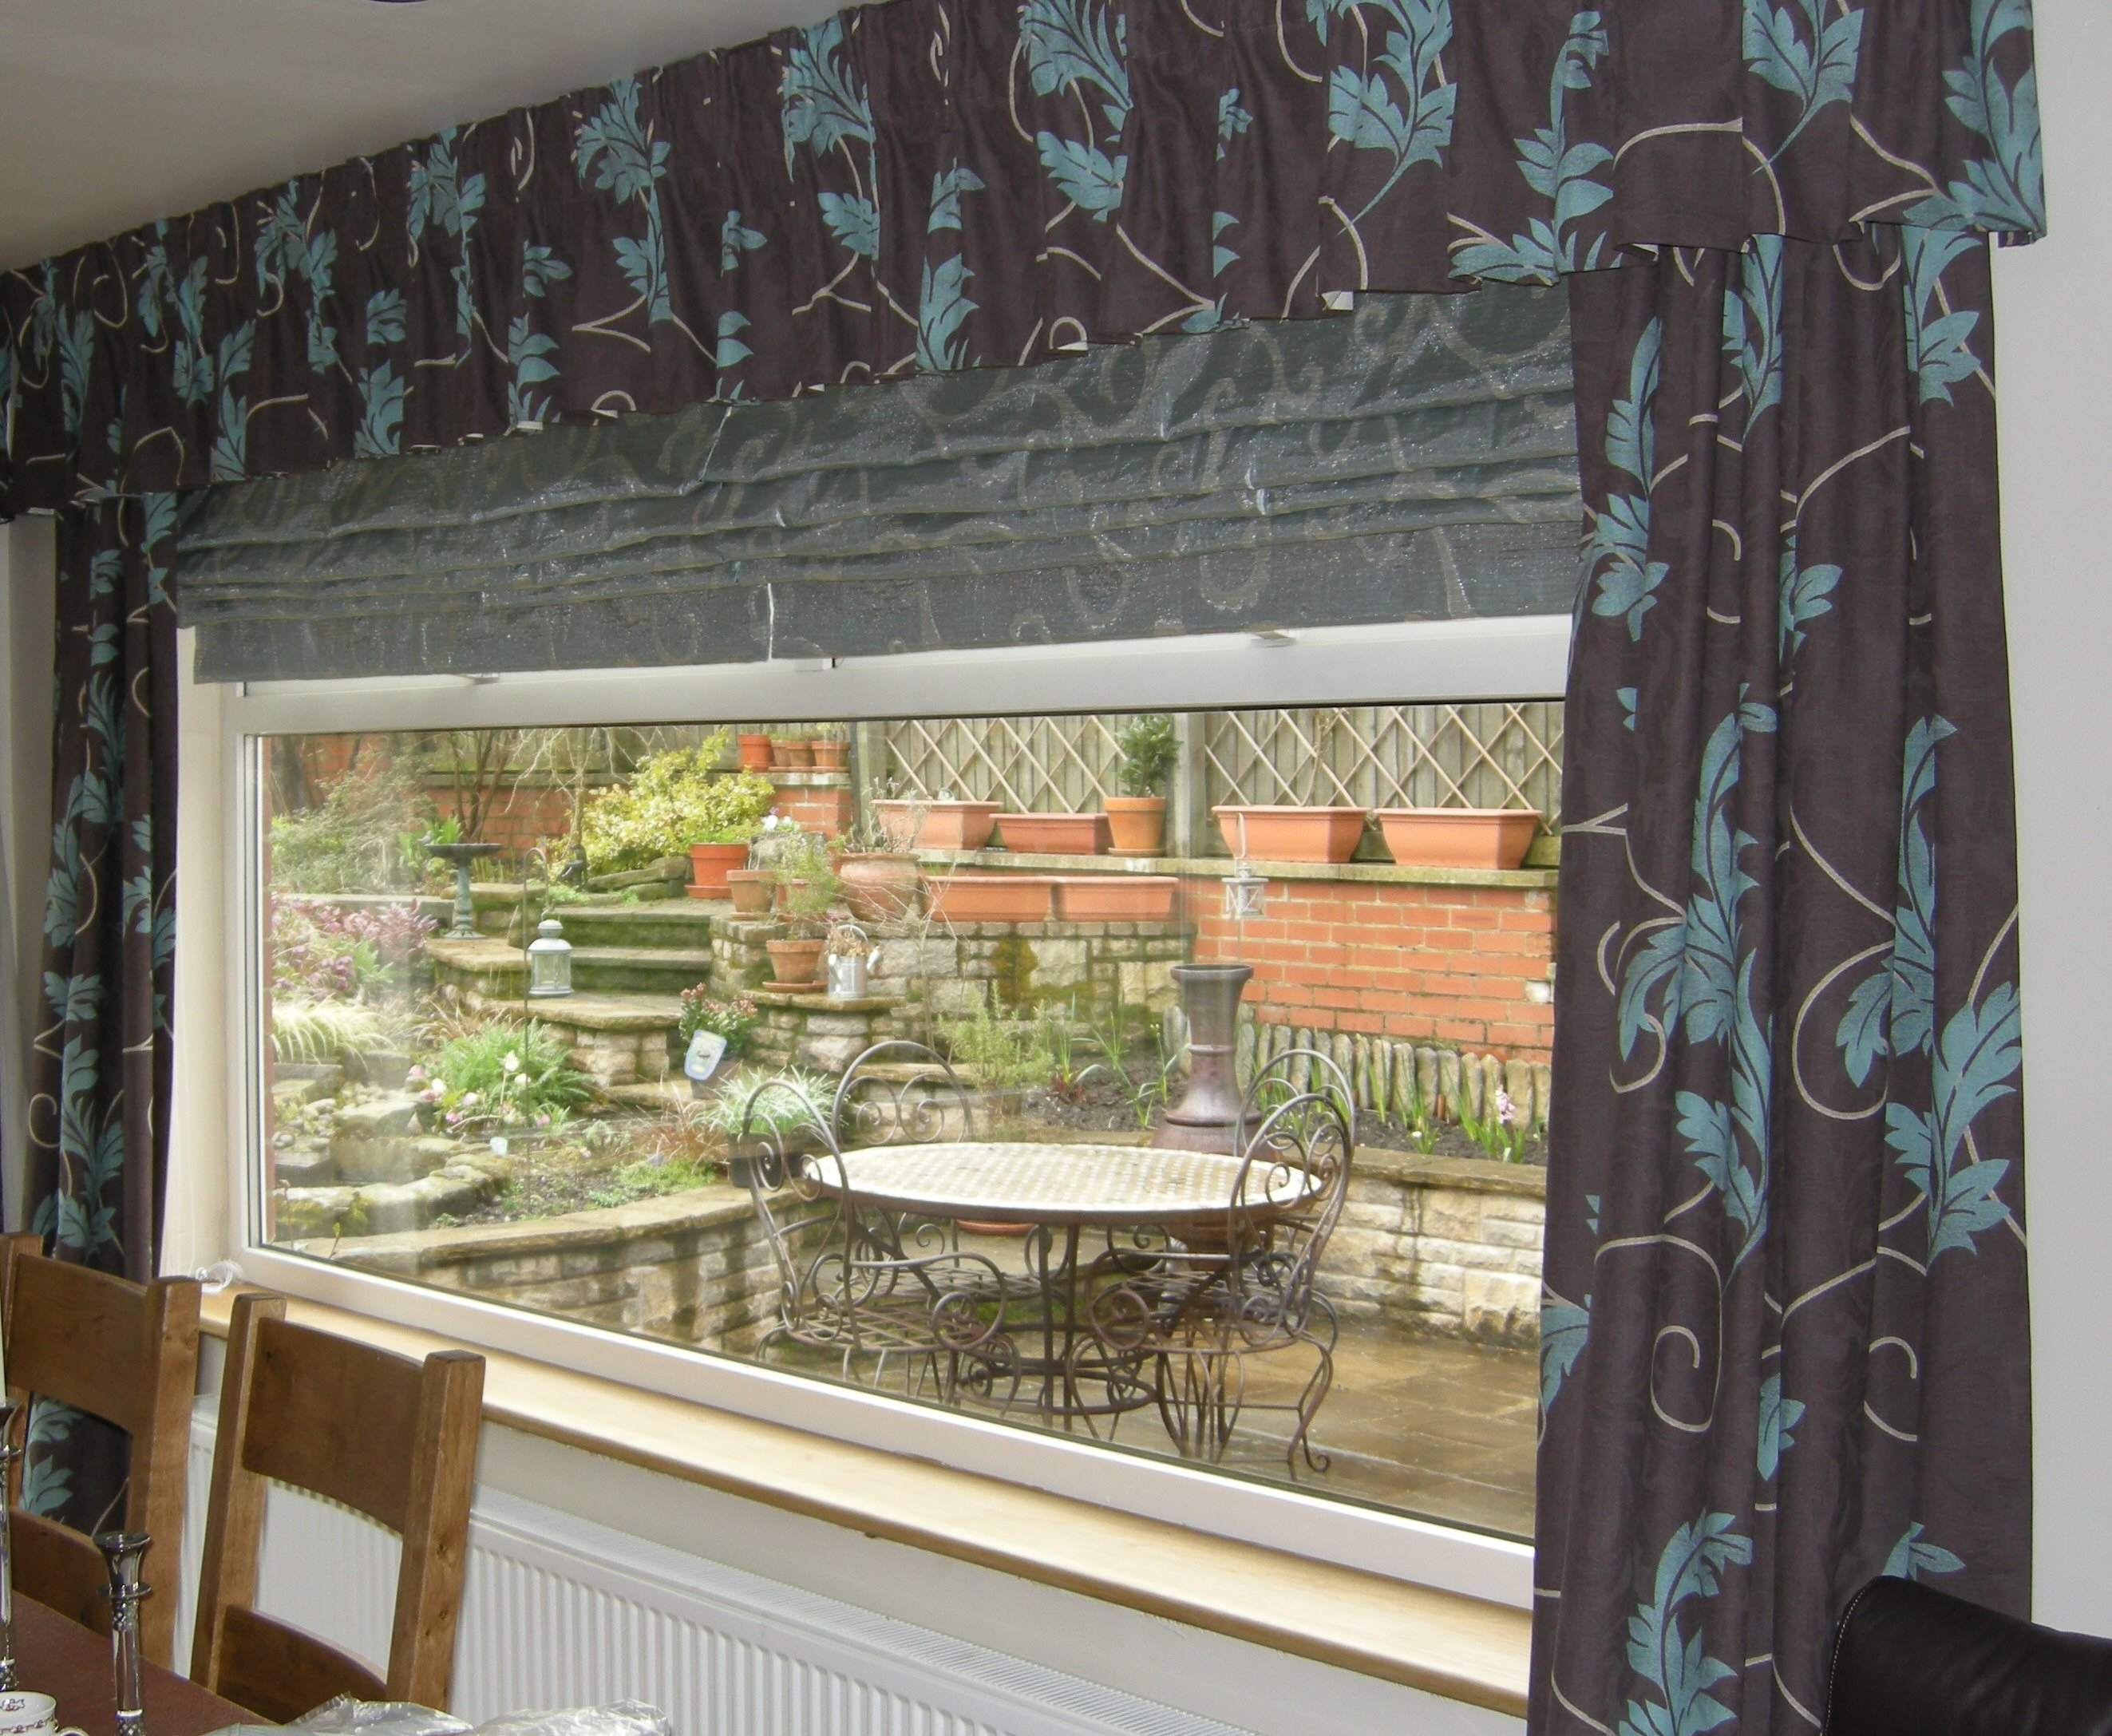 Roman Blinds Bury Roman Blinds Bury Blinds And Curtains With Matching Curtains And Roman Blinds (Image 12 of 15)